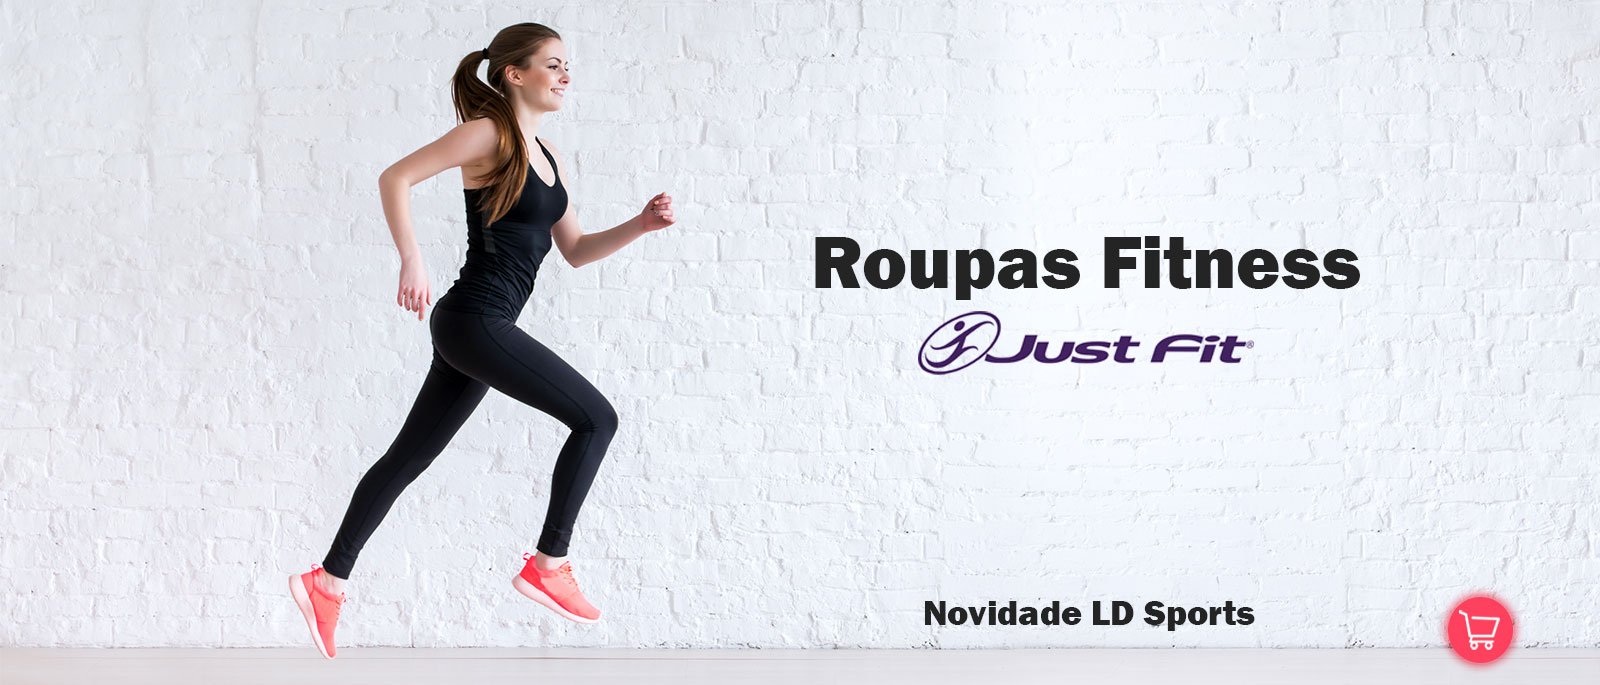 Fitness JustFit